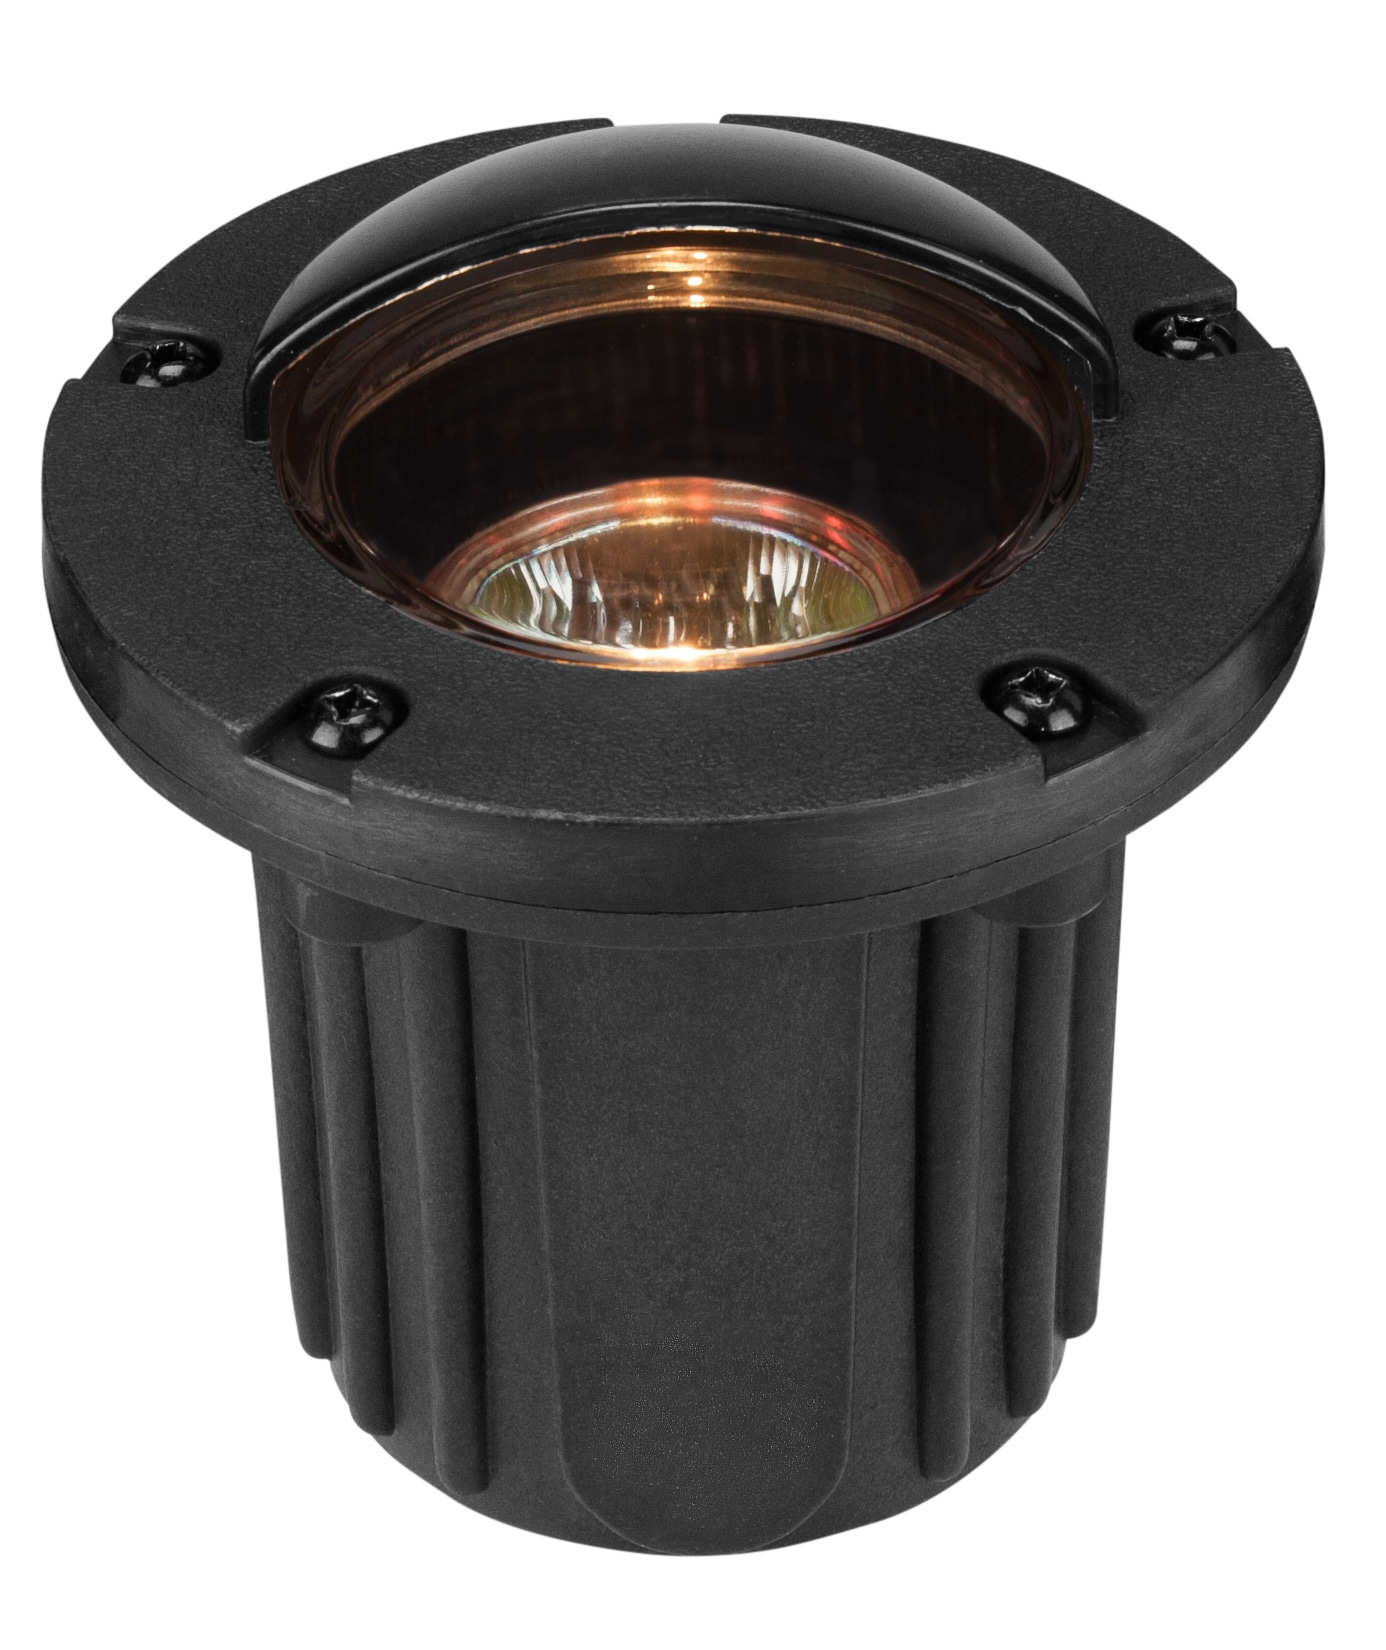 Save  sc 1 st  Quality Landscape u0026 Outdoor Lighting Products & Well Lights by Corona Lighting Product#: CL-340-BK u0026 CL-340-BZ ... azcodes.com